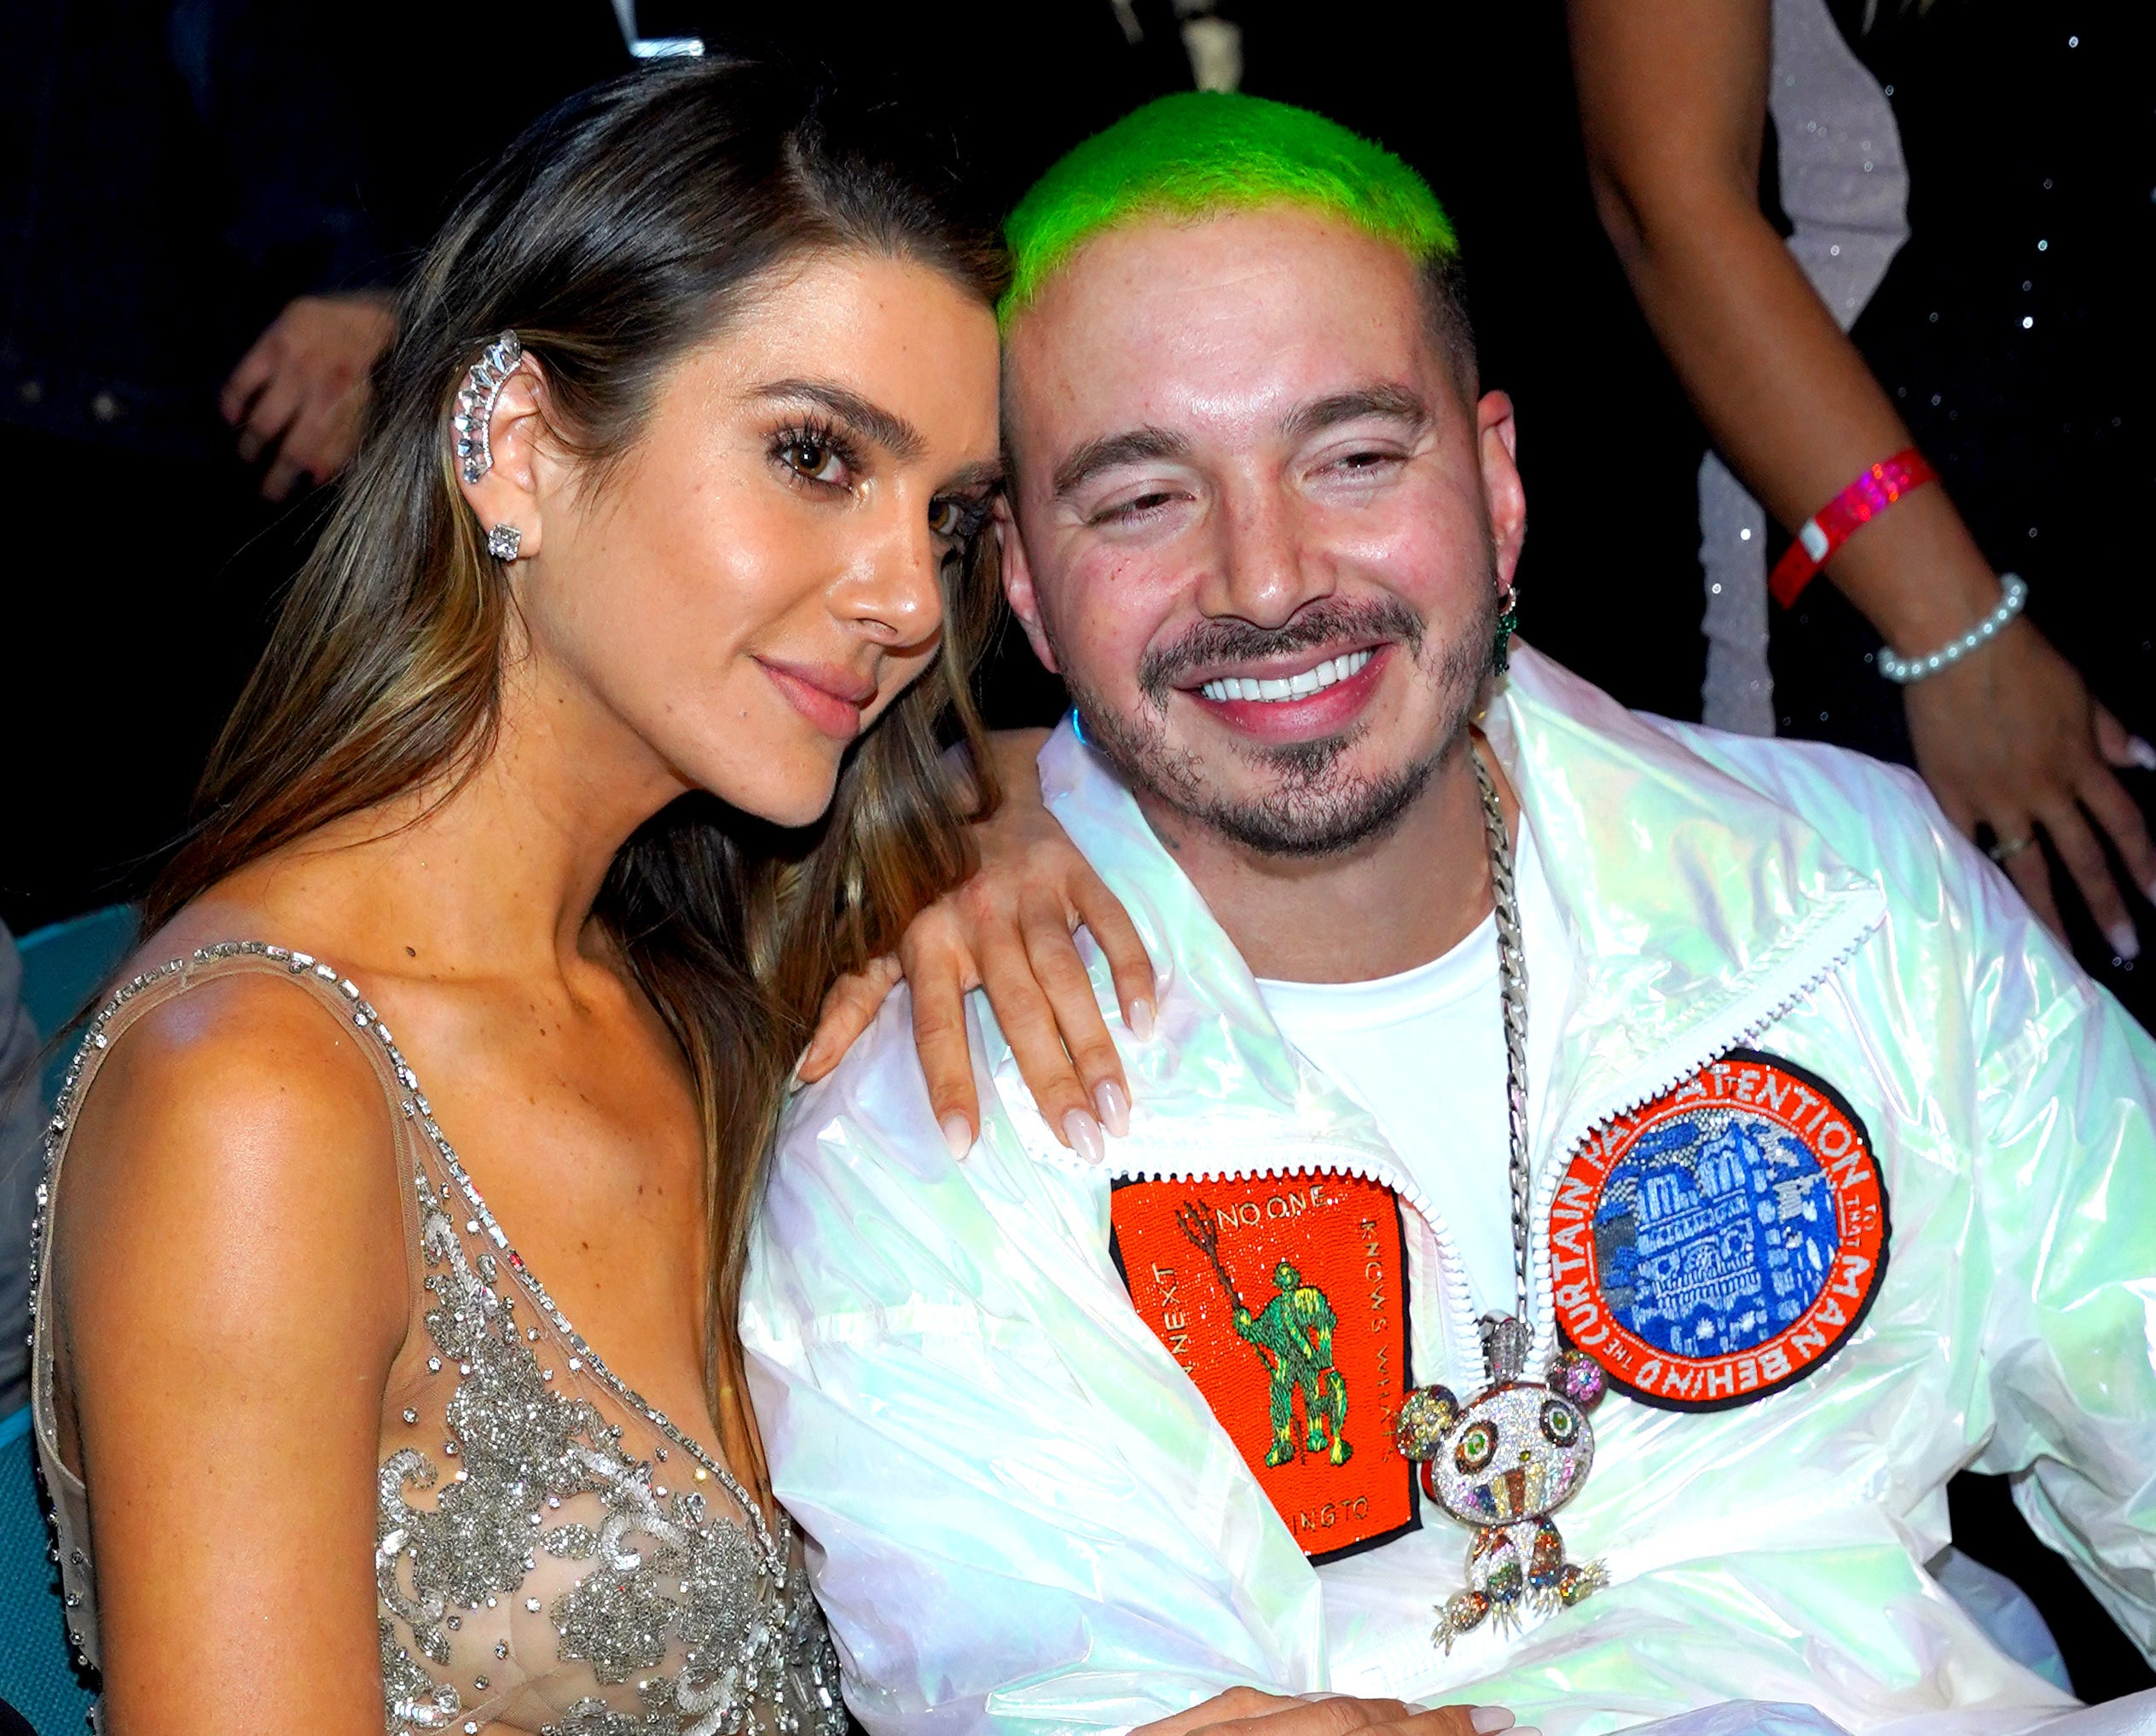 J Balvin and Valentina smile while sitting next to each other at an event